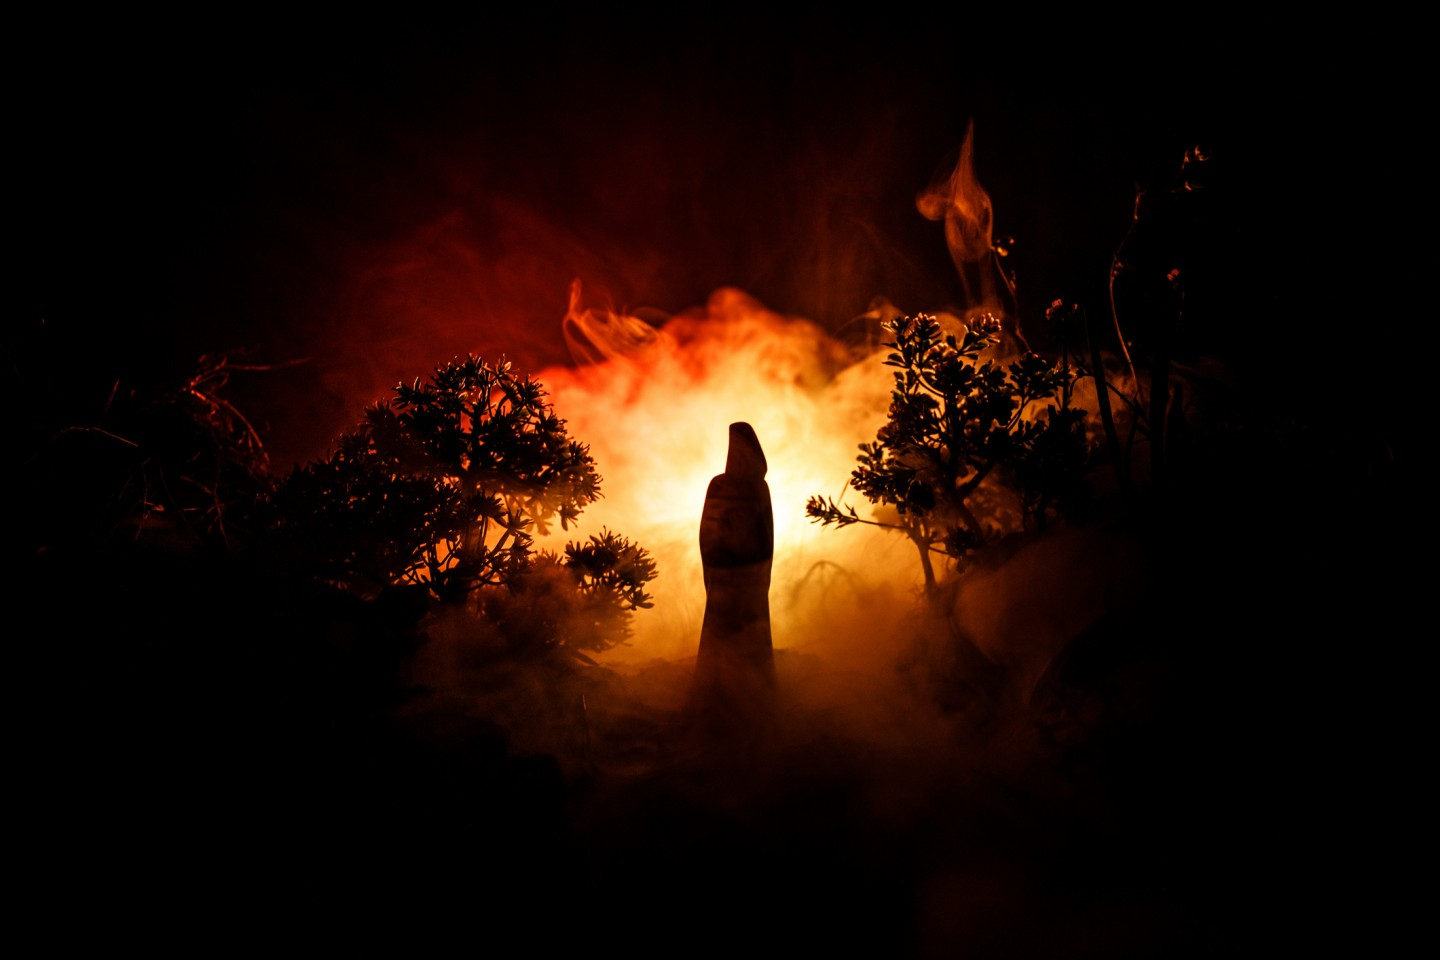 Although one might not have the experience of seeing a twenty feet tall black ghost that flies, one could have in mind all the concepts that could construct such an image. (iStock)